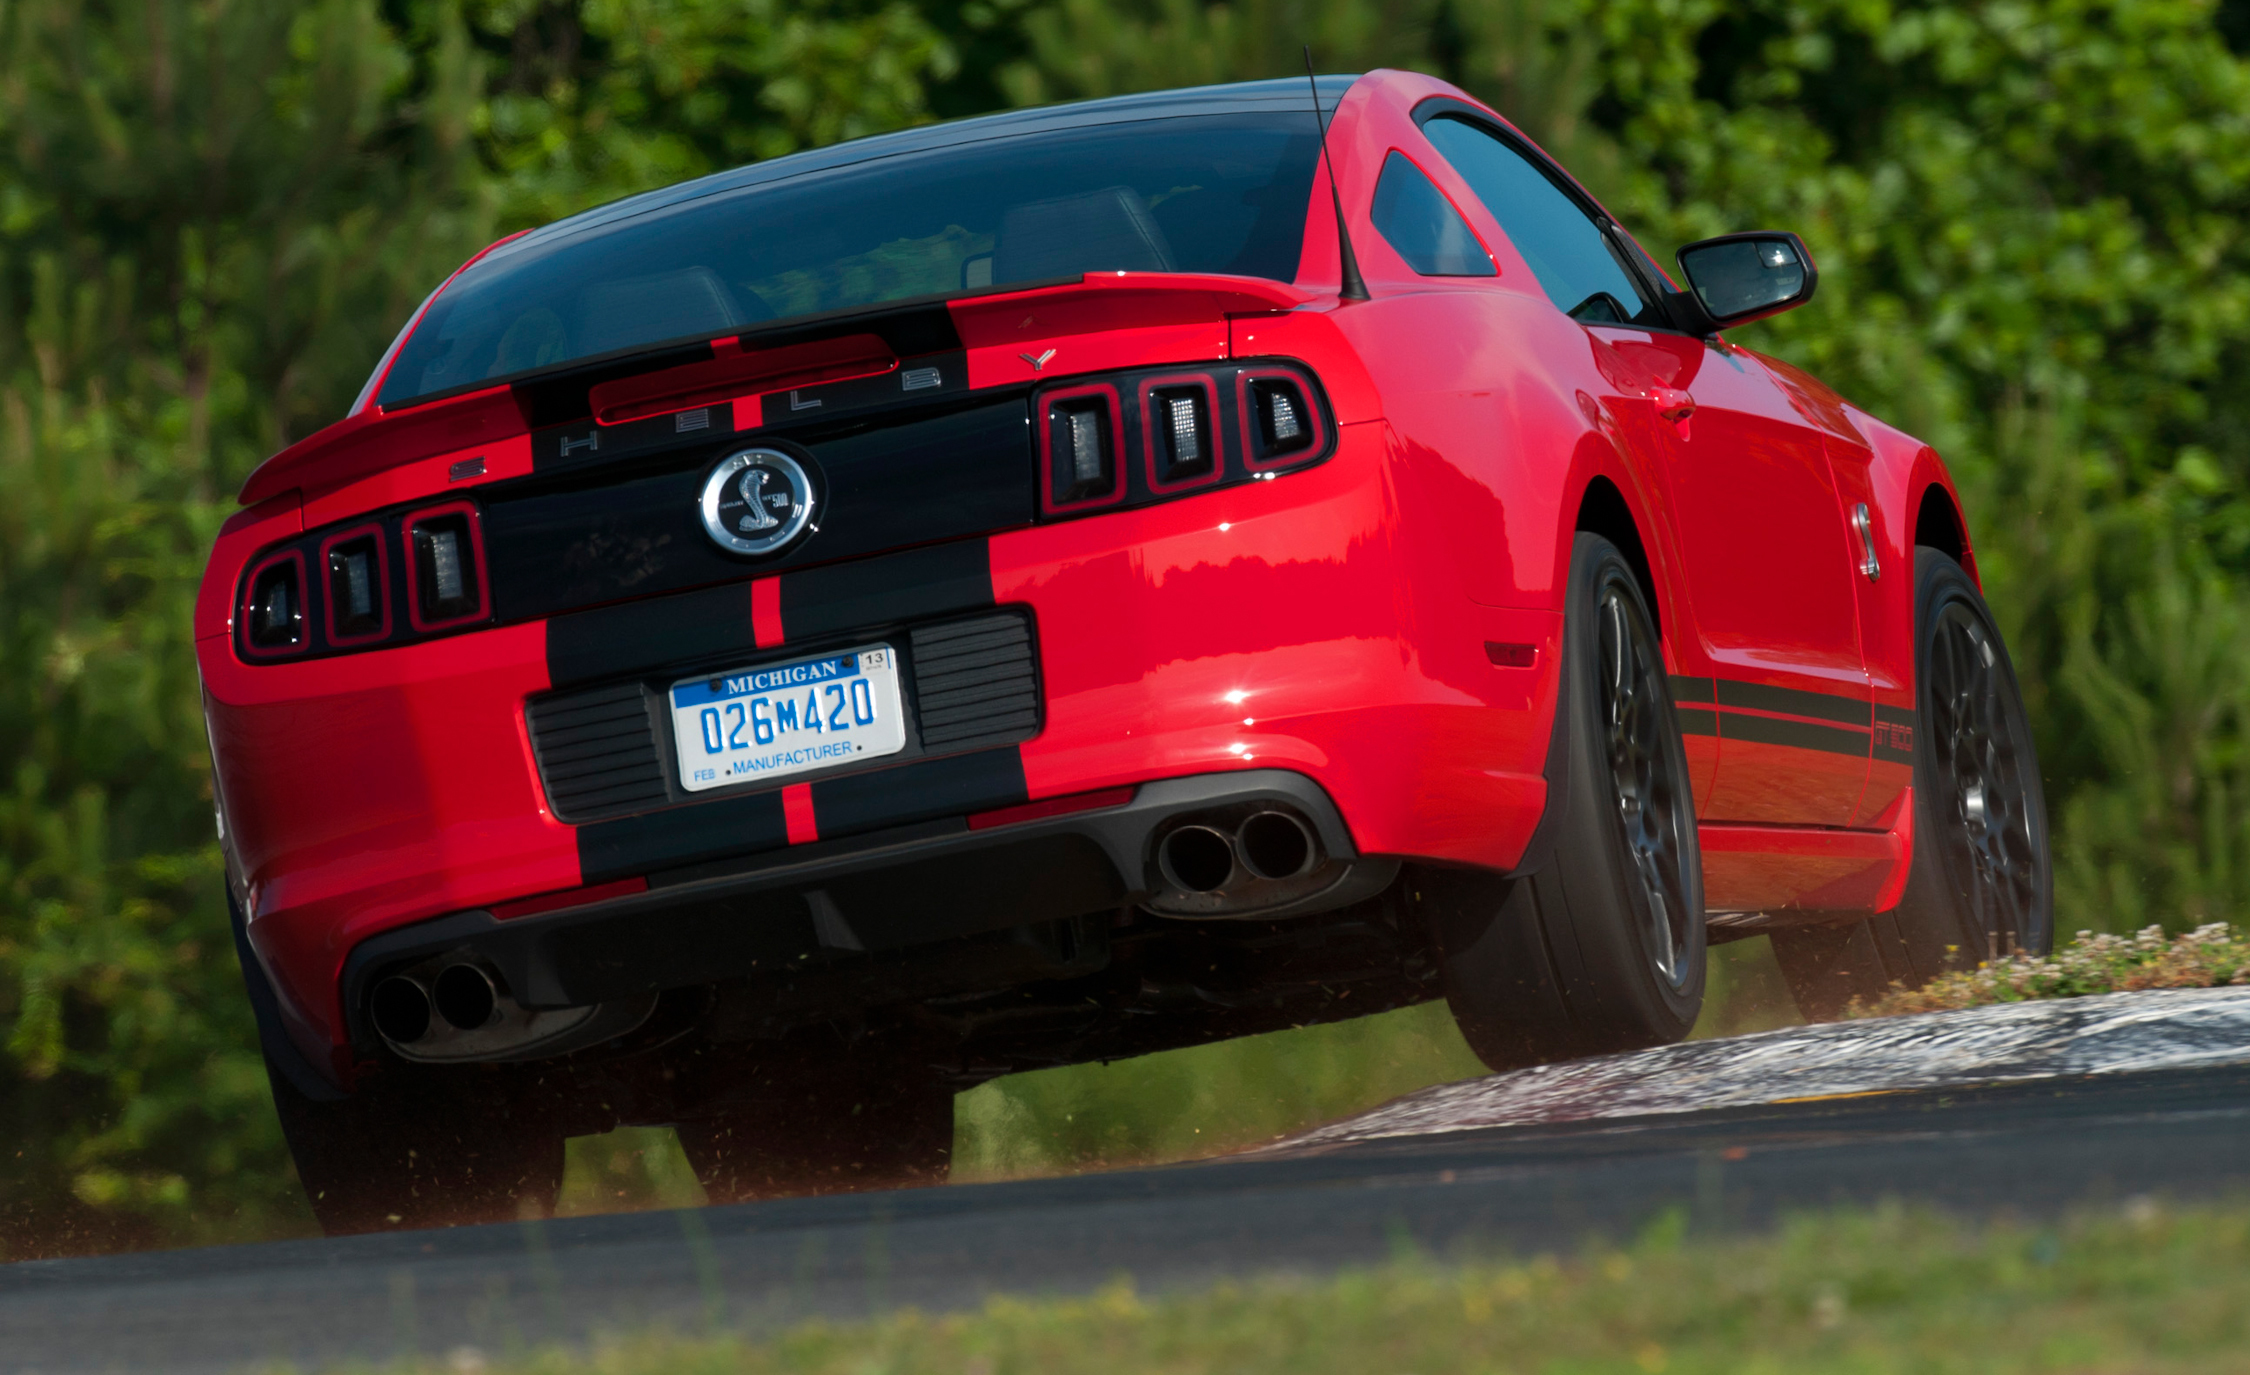 2013 Ford Mustang Shelby GT500 Red Test Drive Rear View (View 42 of 47)